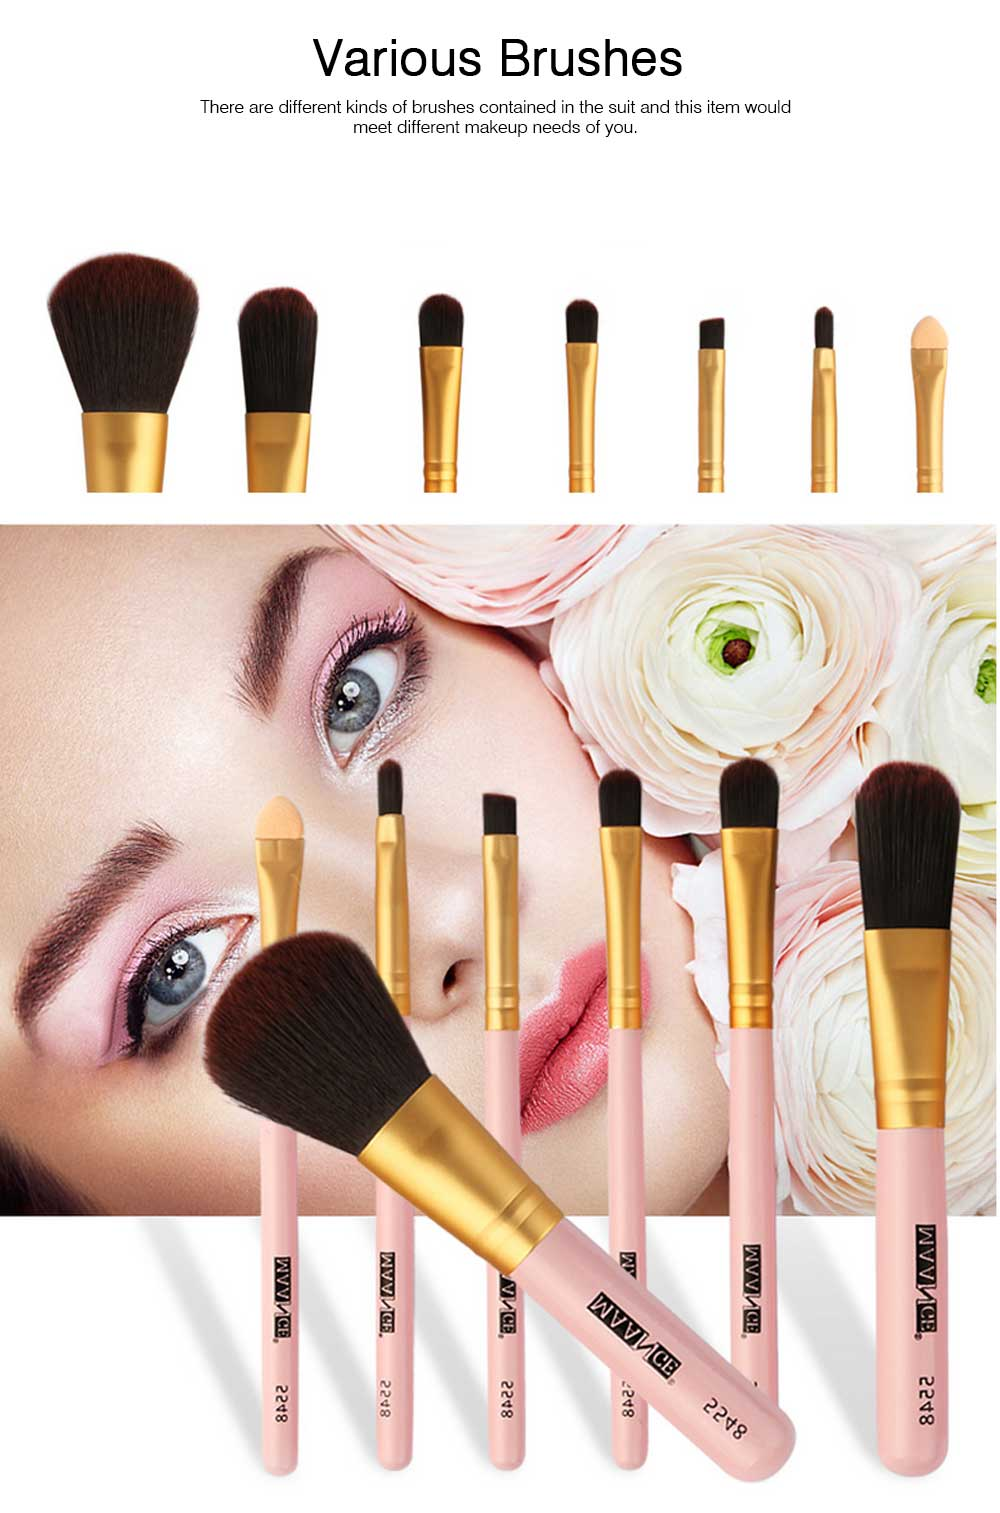 Stylish 7PCS Professional Makeup Brushes Set with Iron Box, Elegant Finest Cosmetic Brushes Suit For Makeup Beginners 4